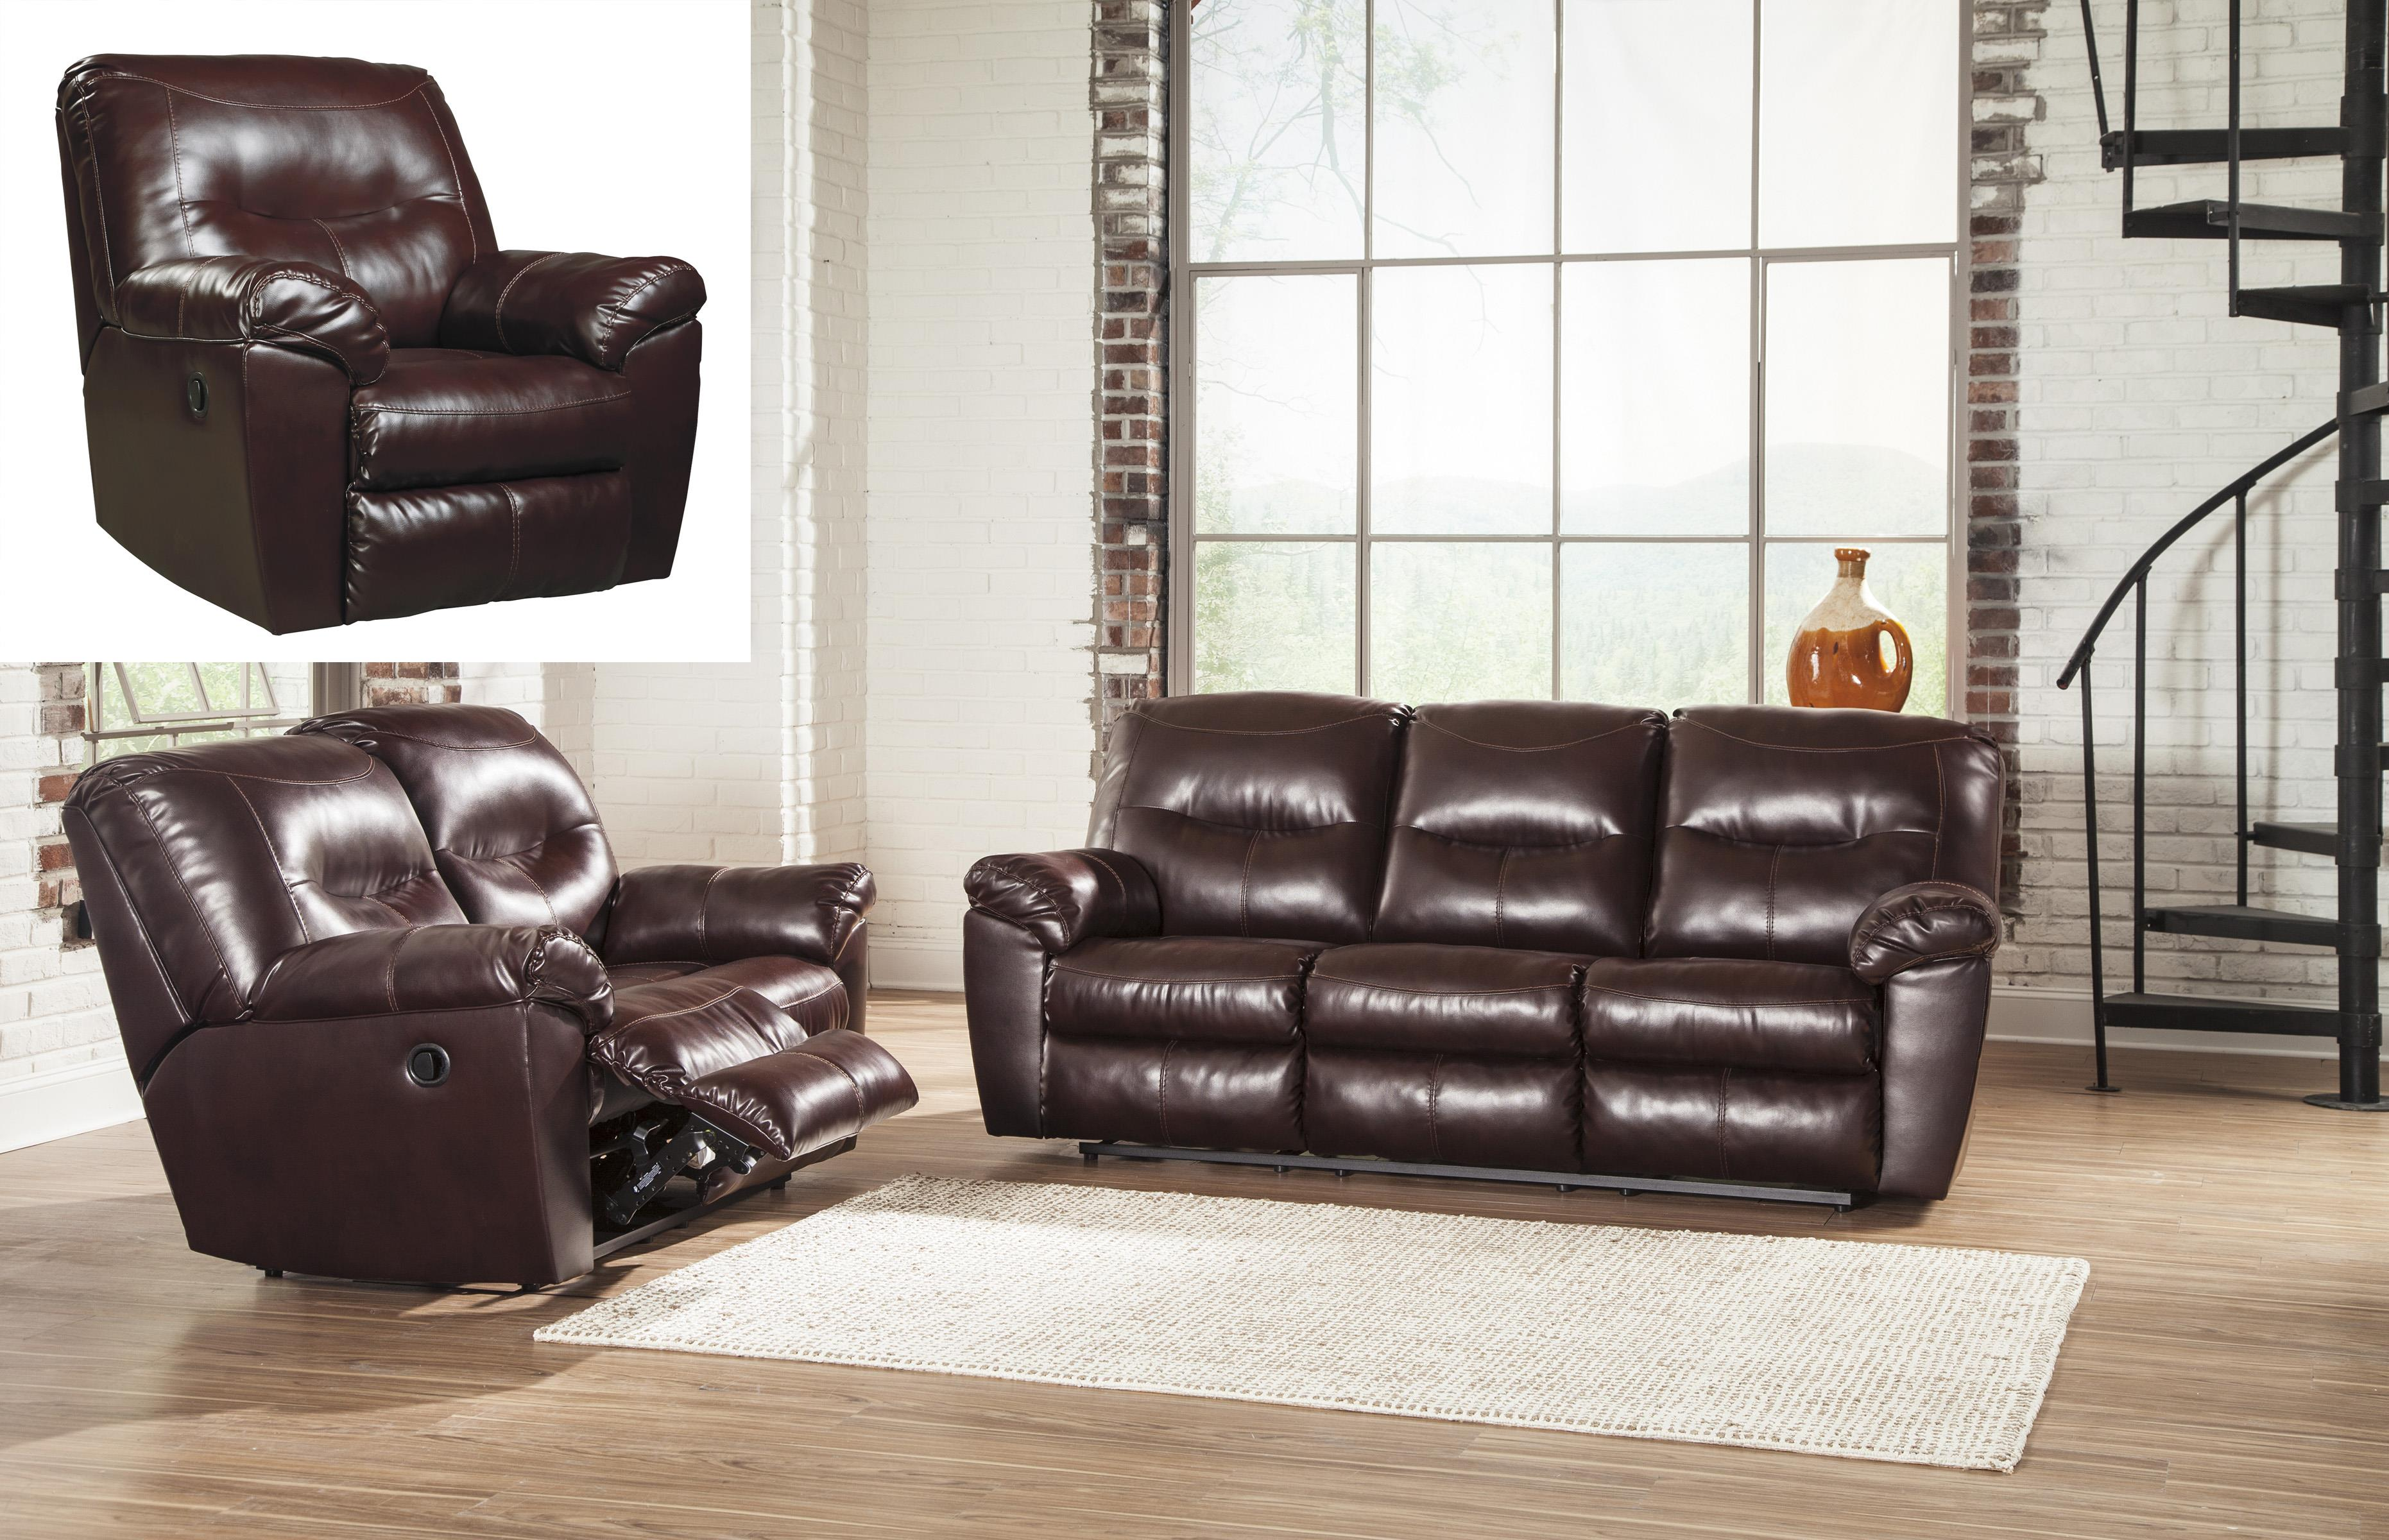 Signature Design by Ashley Kilzer DuraBlend® Reclining Living Room Group - Item Number: 84702 Living Room Group 2